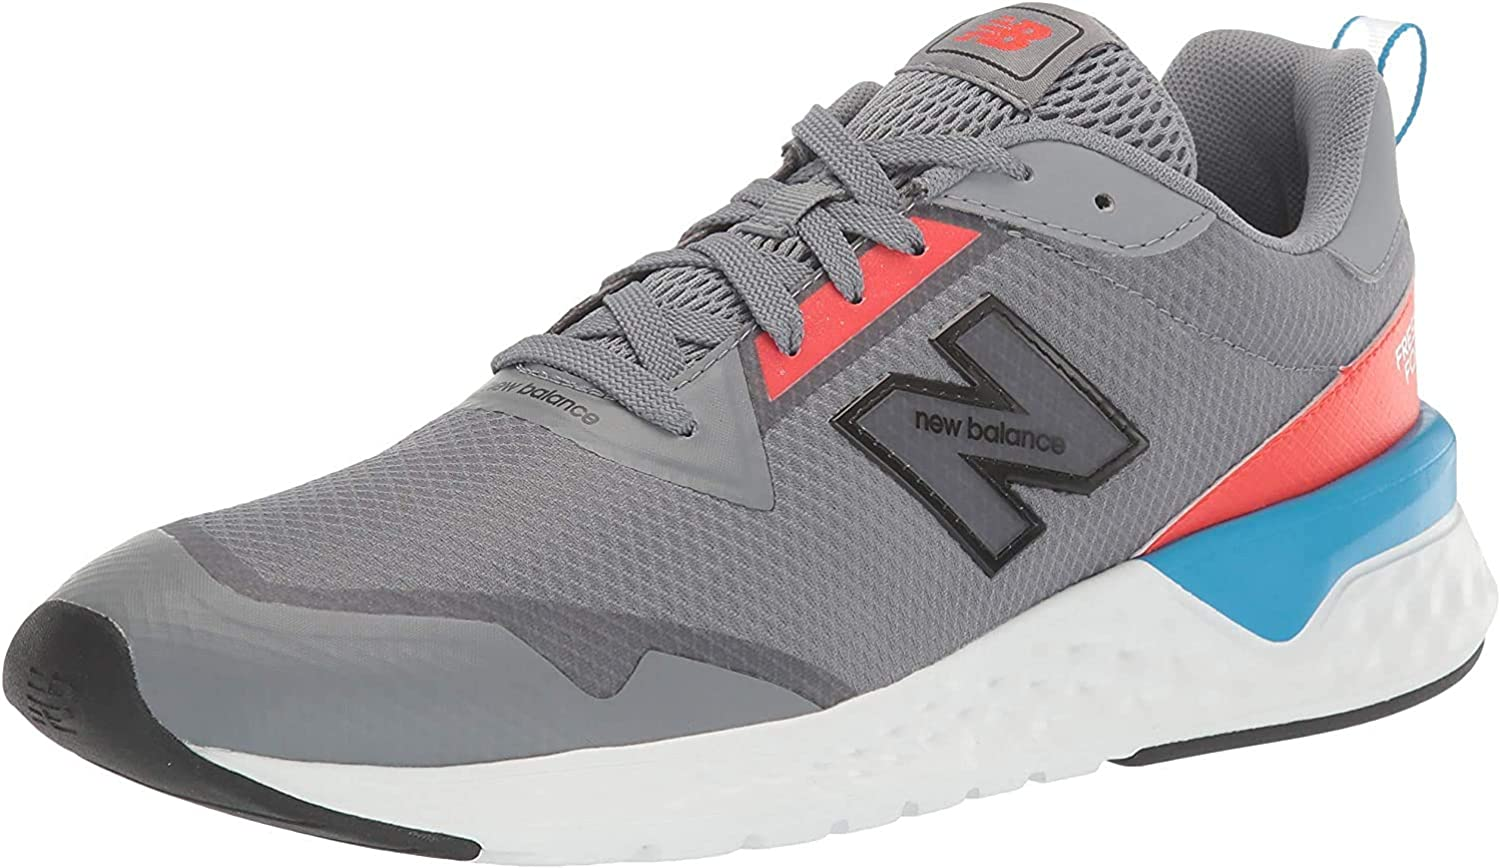 New Balance MS515RB2, Trail Running Shoe Mens, Azul Gris, 32 EU: Amazon.es: Zapatos y complementos